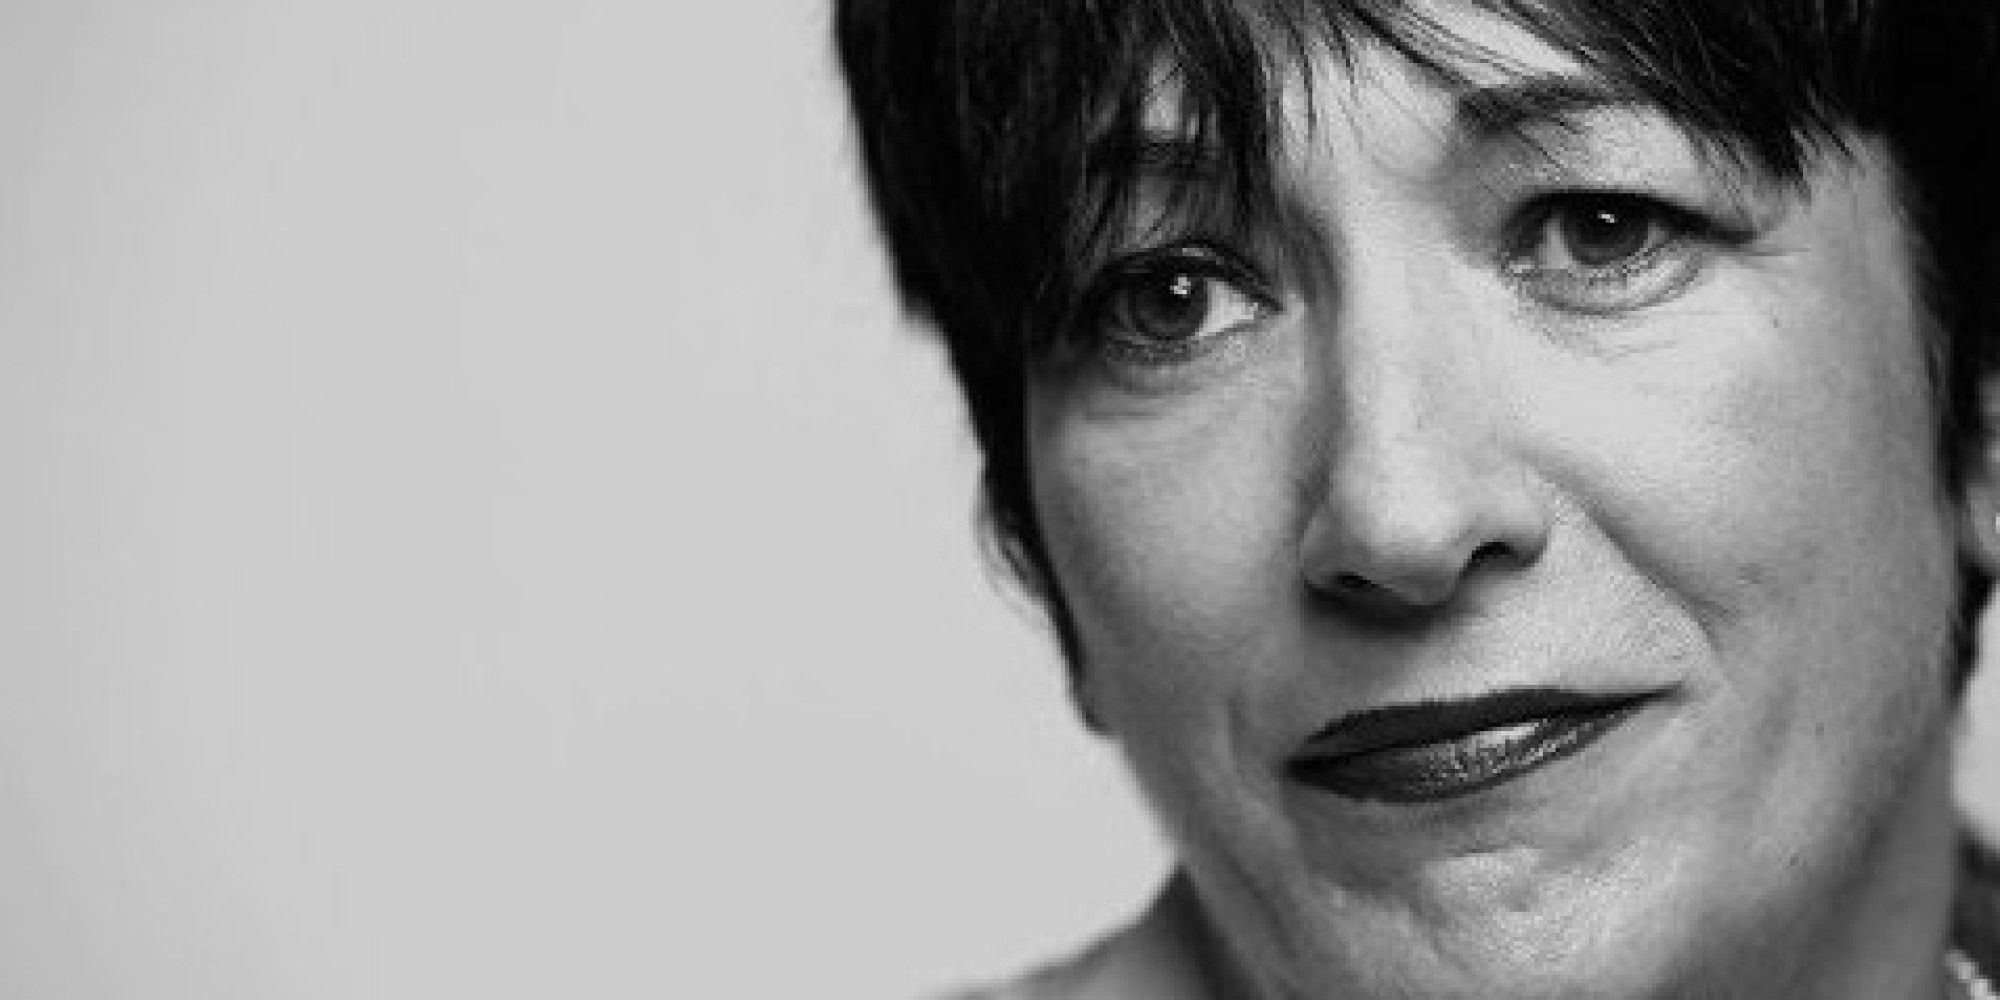 One On One Ghislaine Maxwell On Protecting The Blue Heart